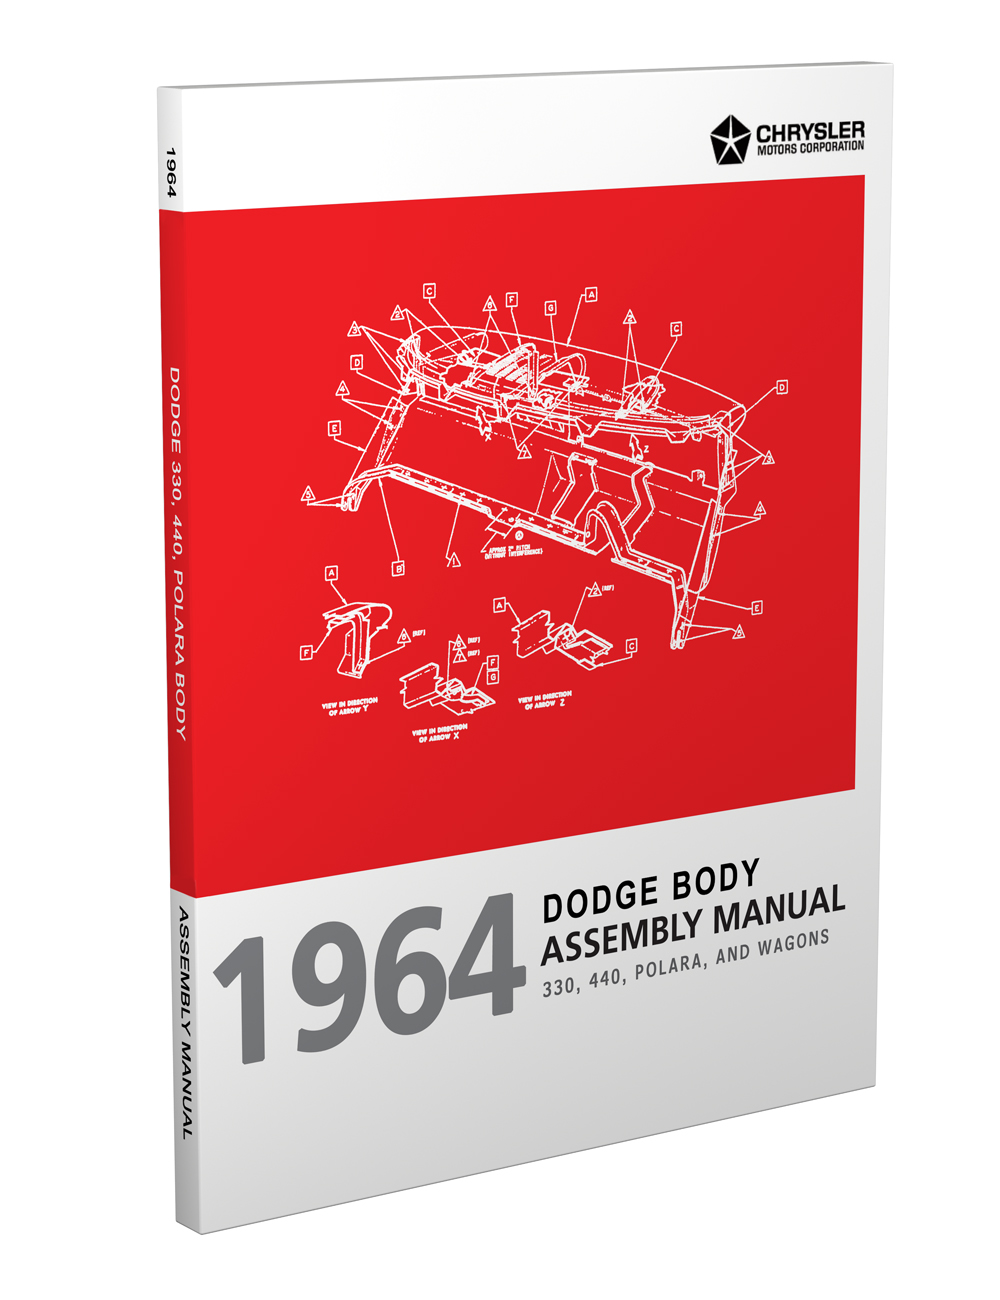 1964 Dodge Polara, 330, and 440 Body Assembly Manual Reprint